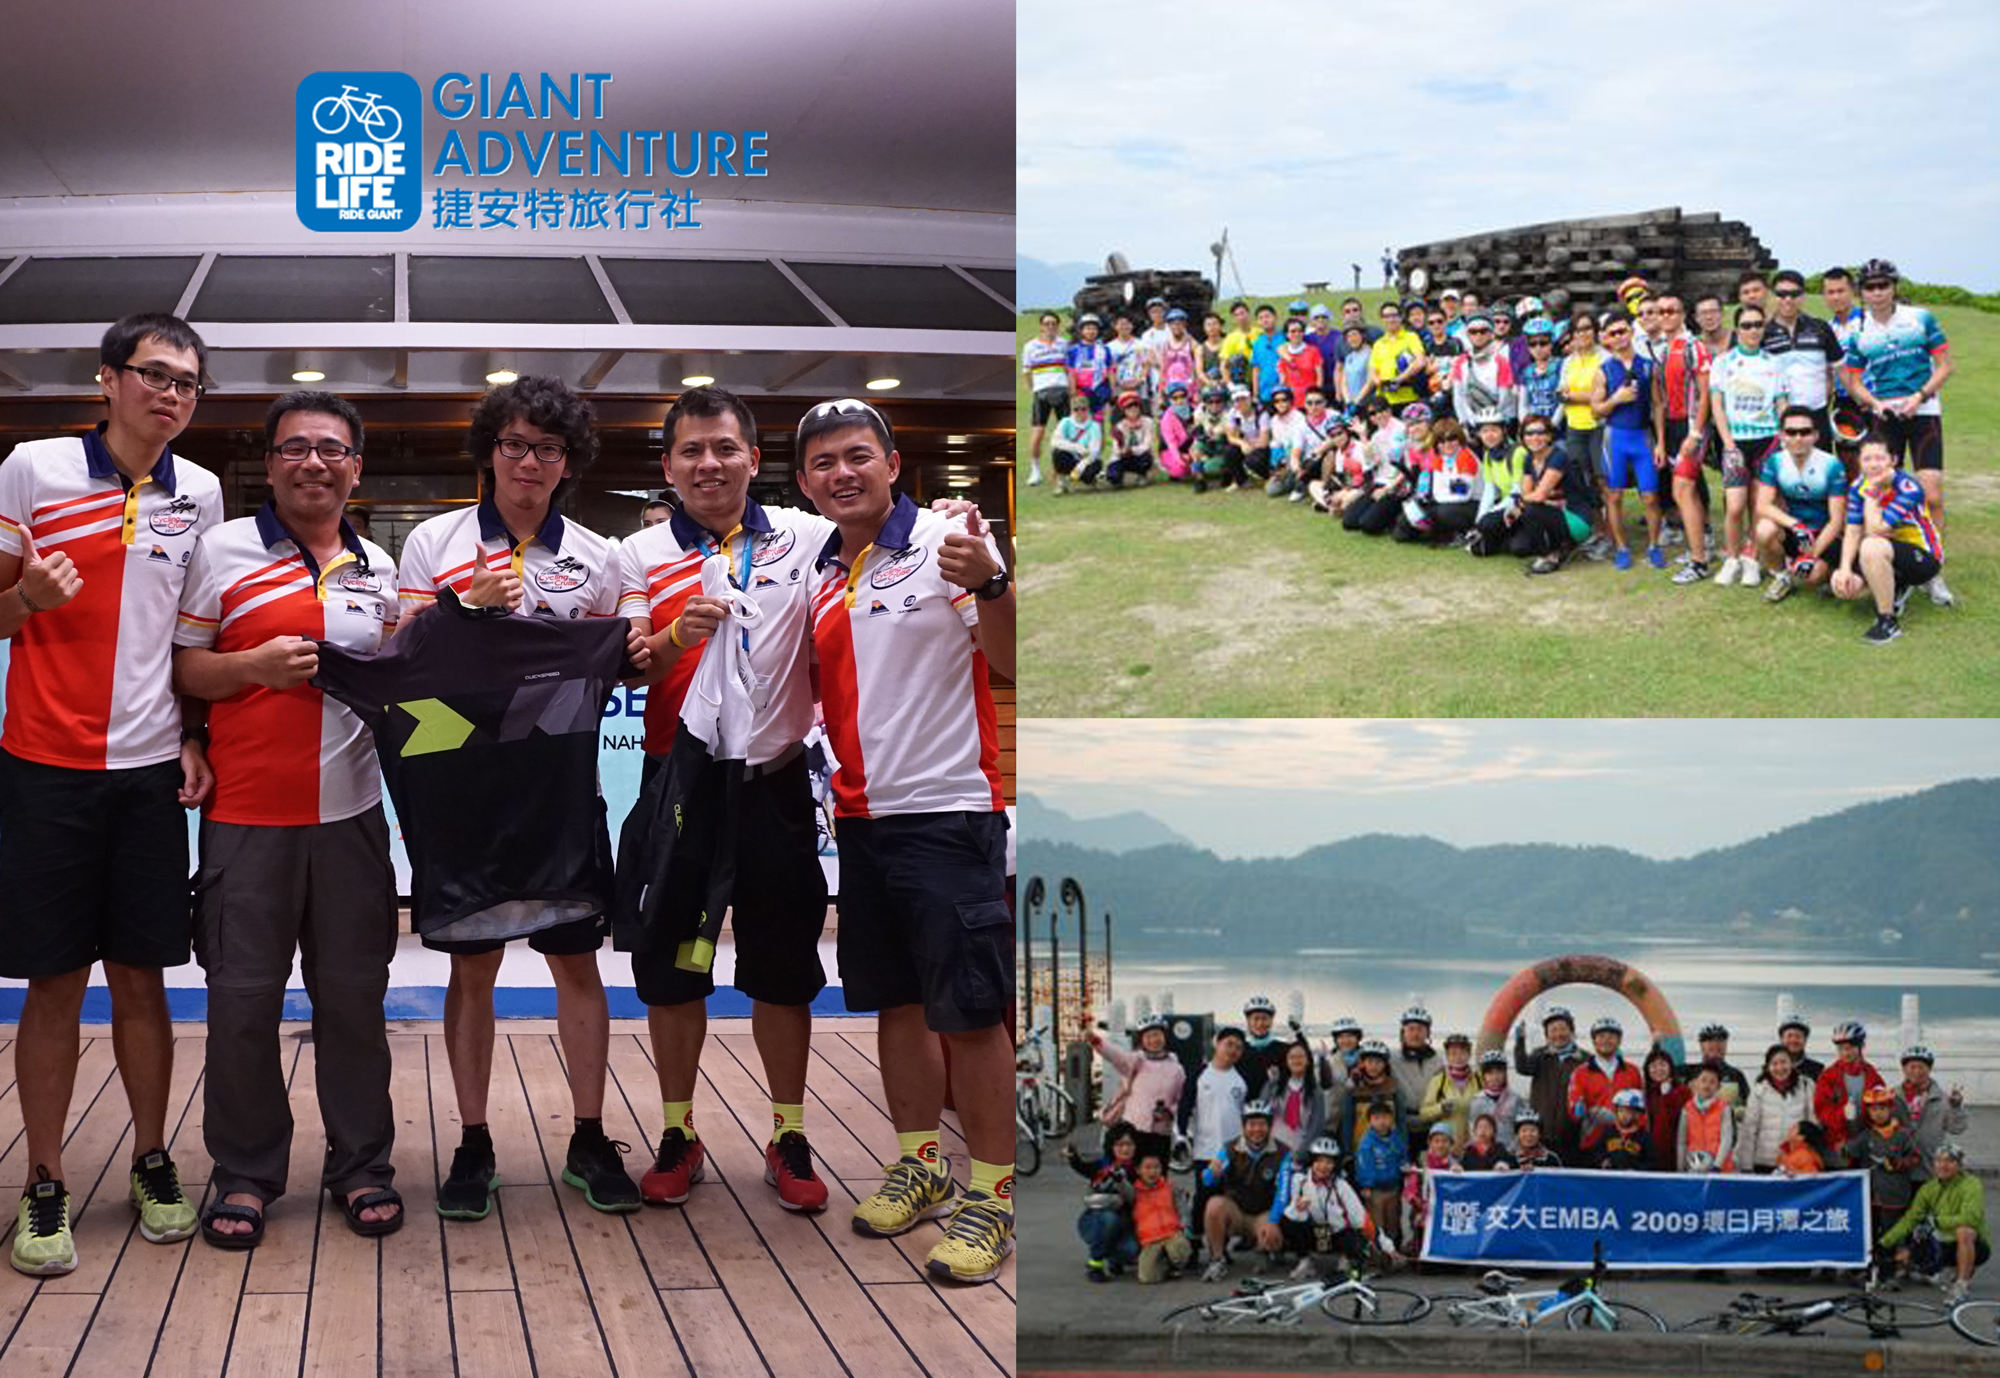 376ee0a83674 Giant Adventure offers fixed departure dates from Taichung and Taipei for  their Round Island Tours. These tours range from 9 days to 15 days  depending on ...